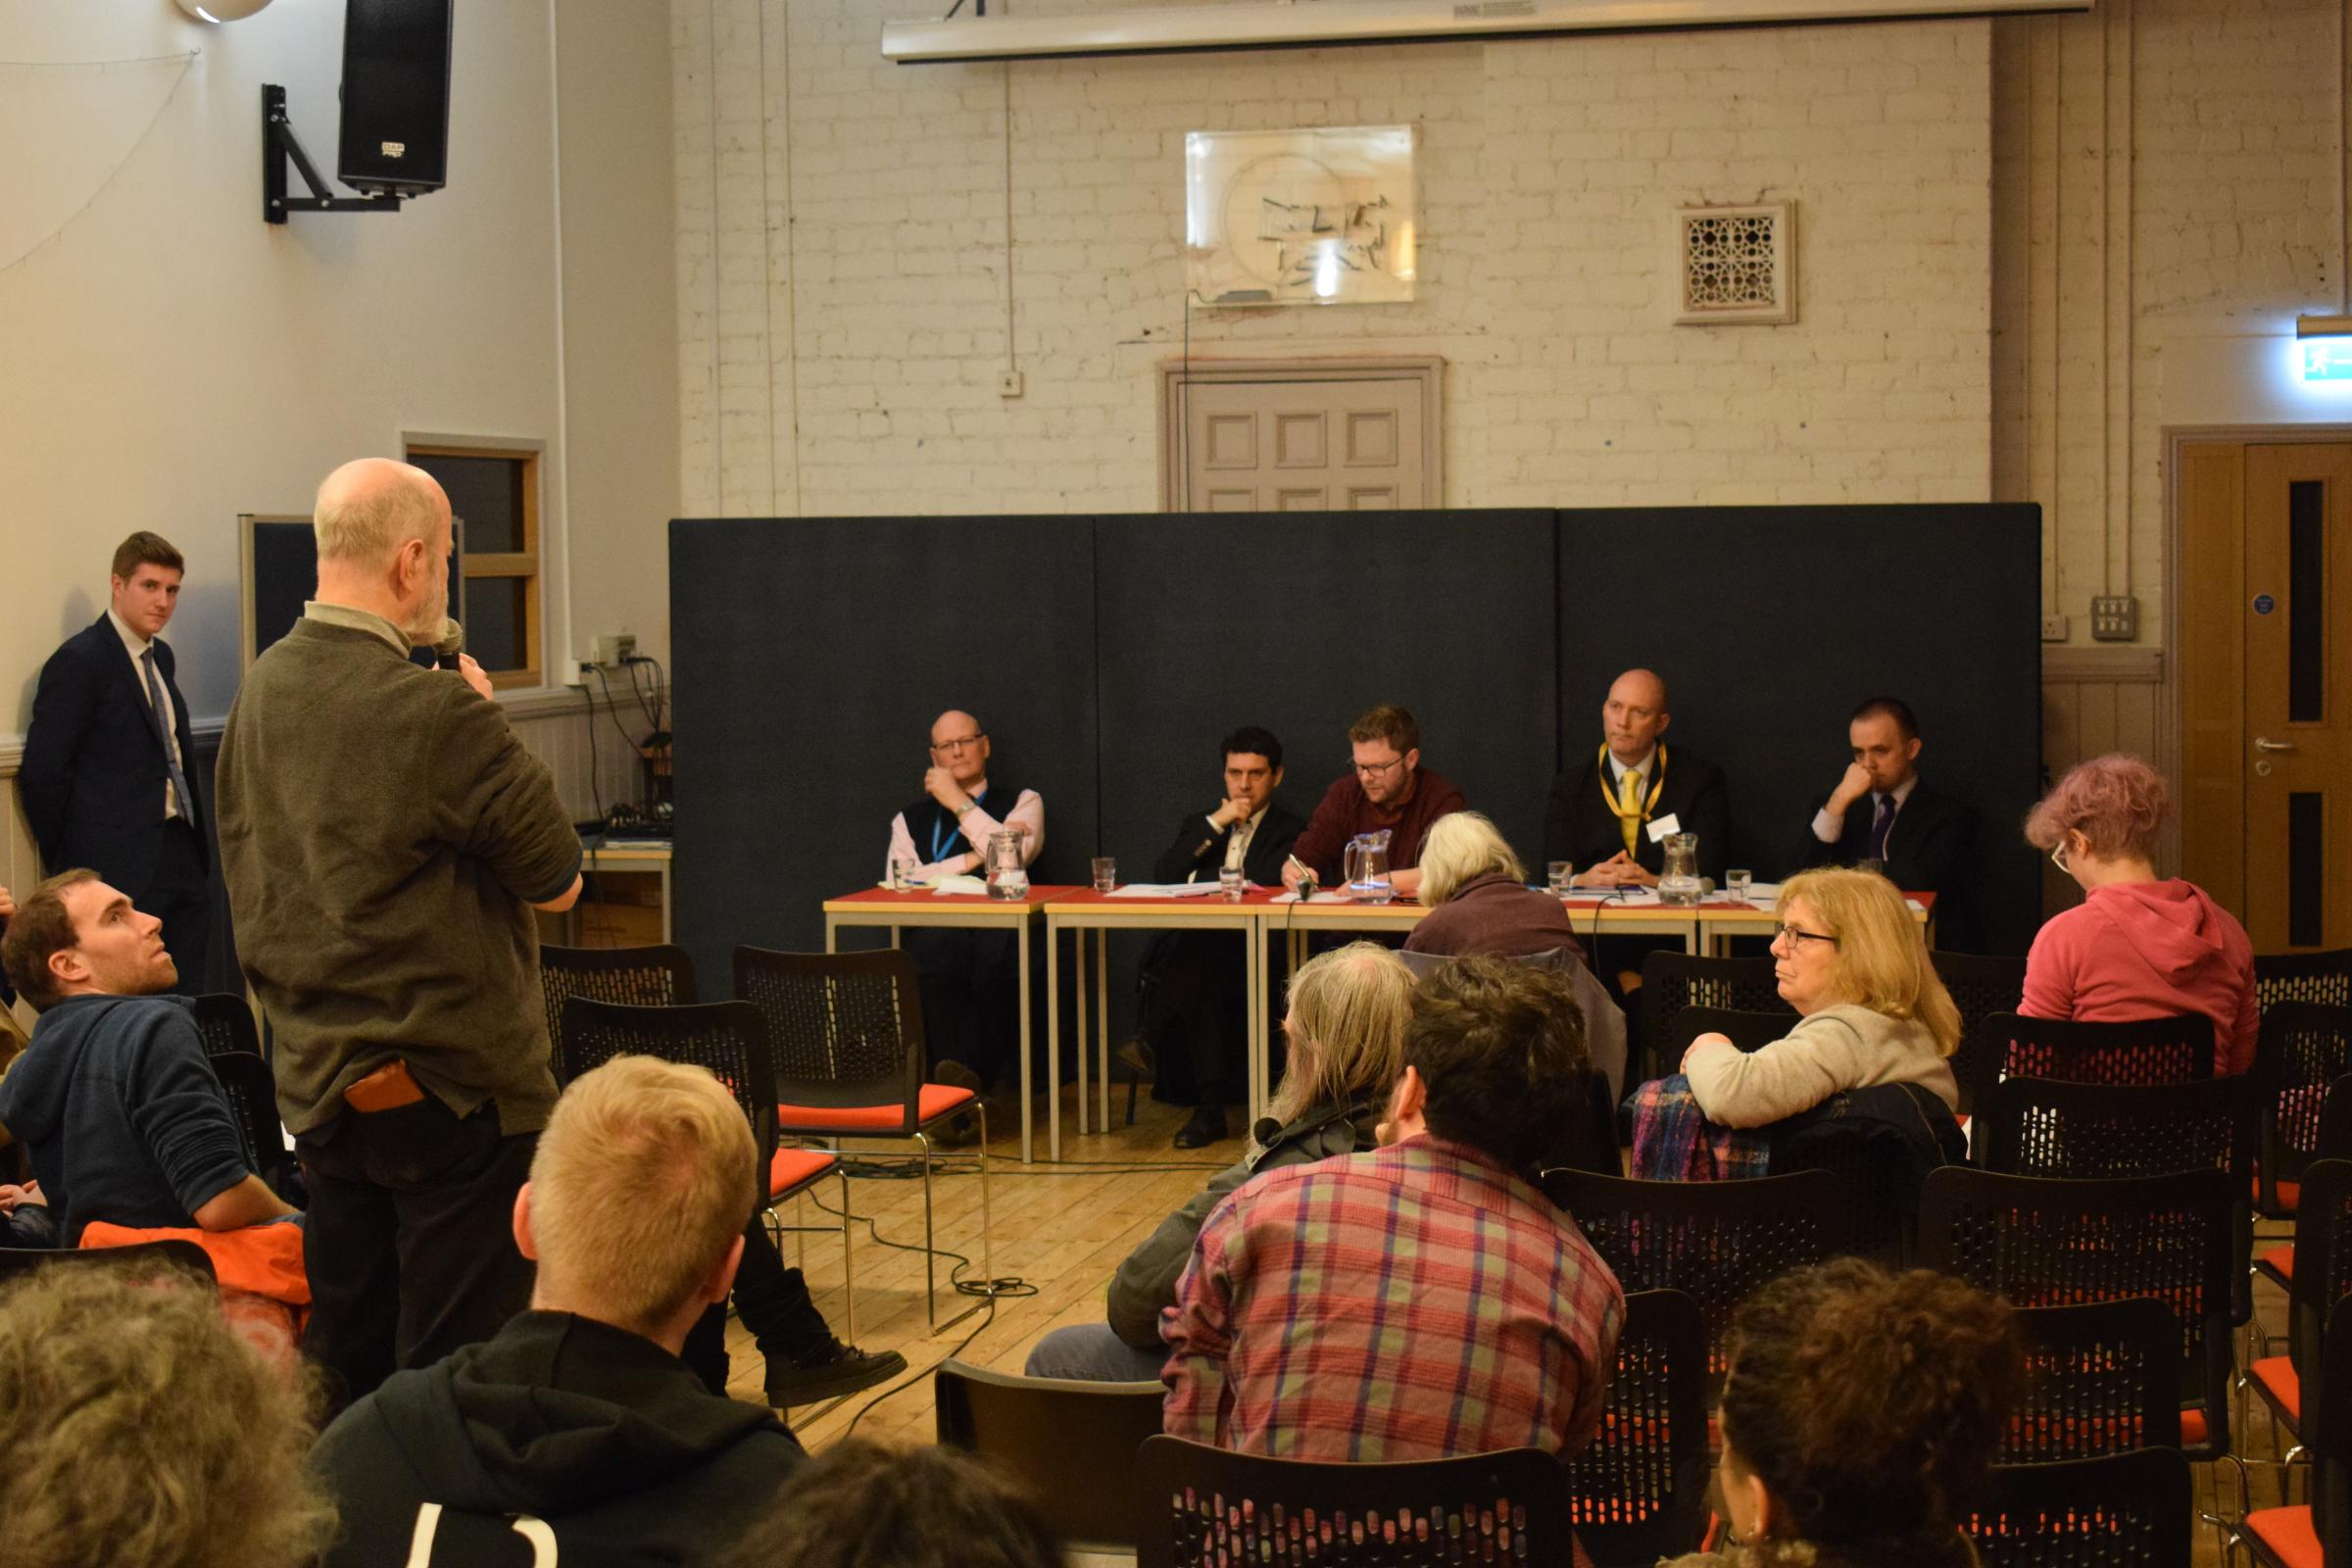 A passenger raising an issue with representatives from First Bus at a public meeting organised by MP Alex Sobel (seated at desk, second left)